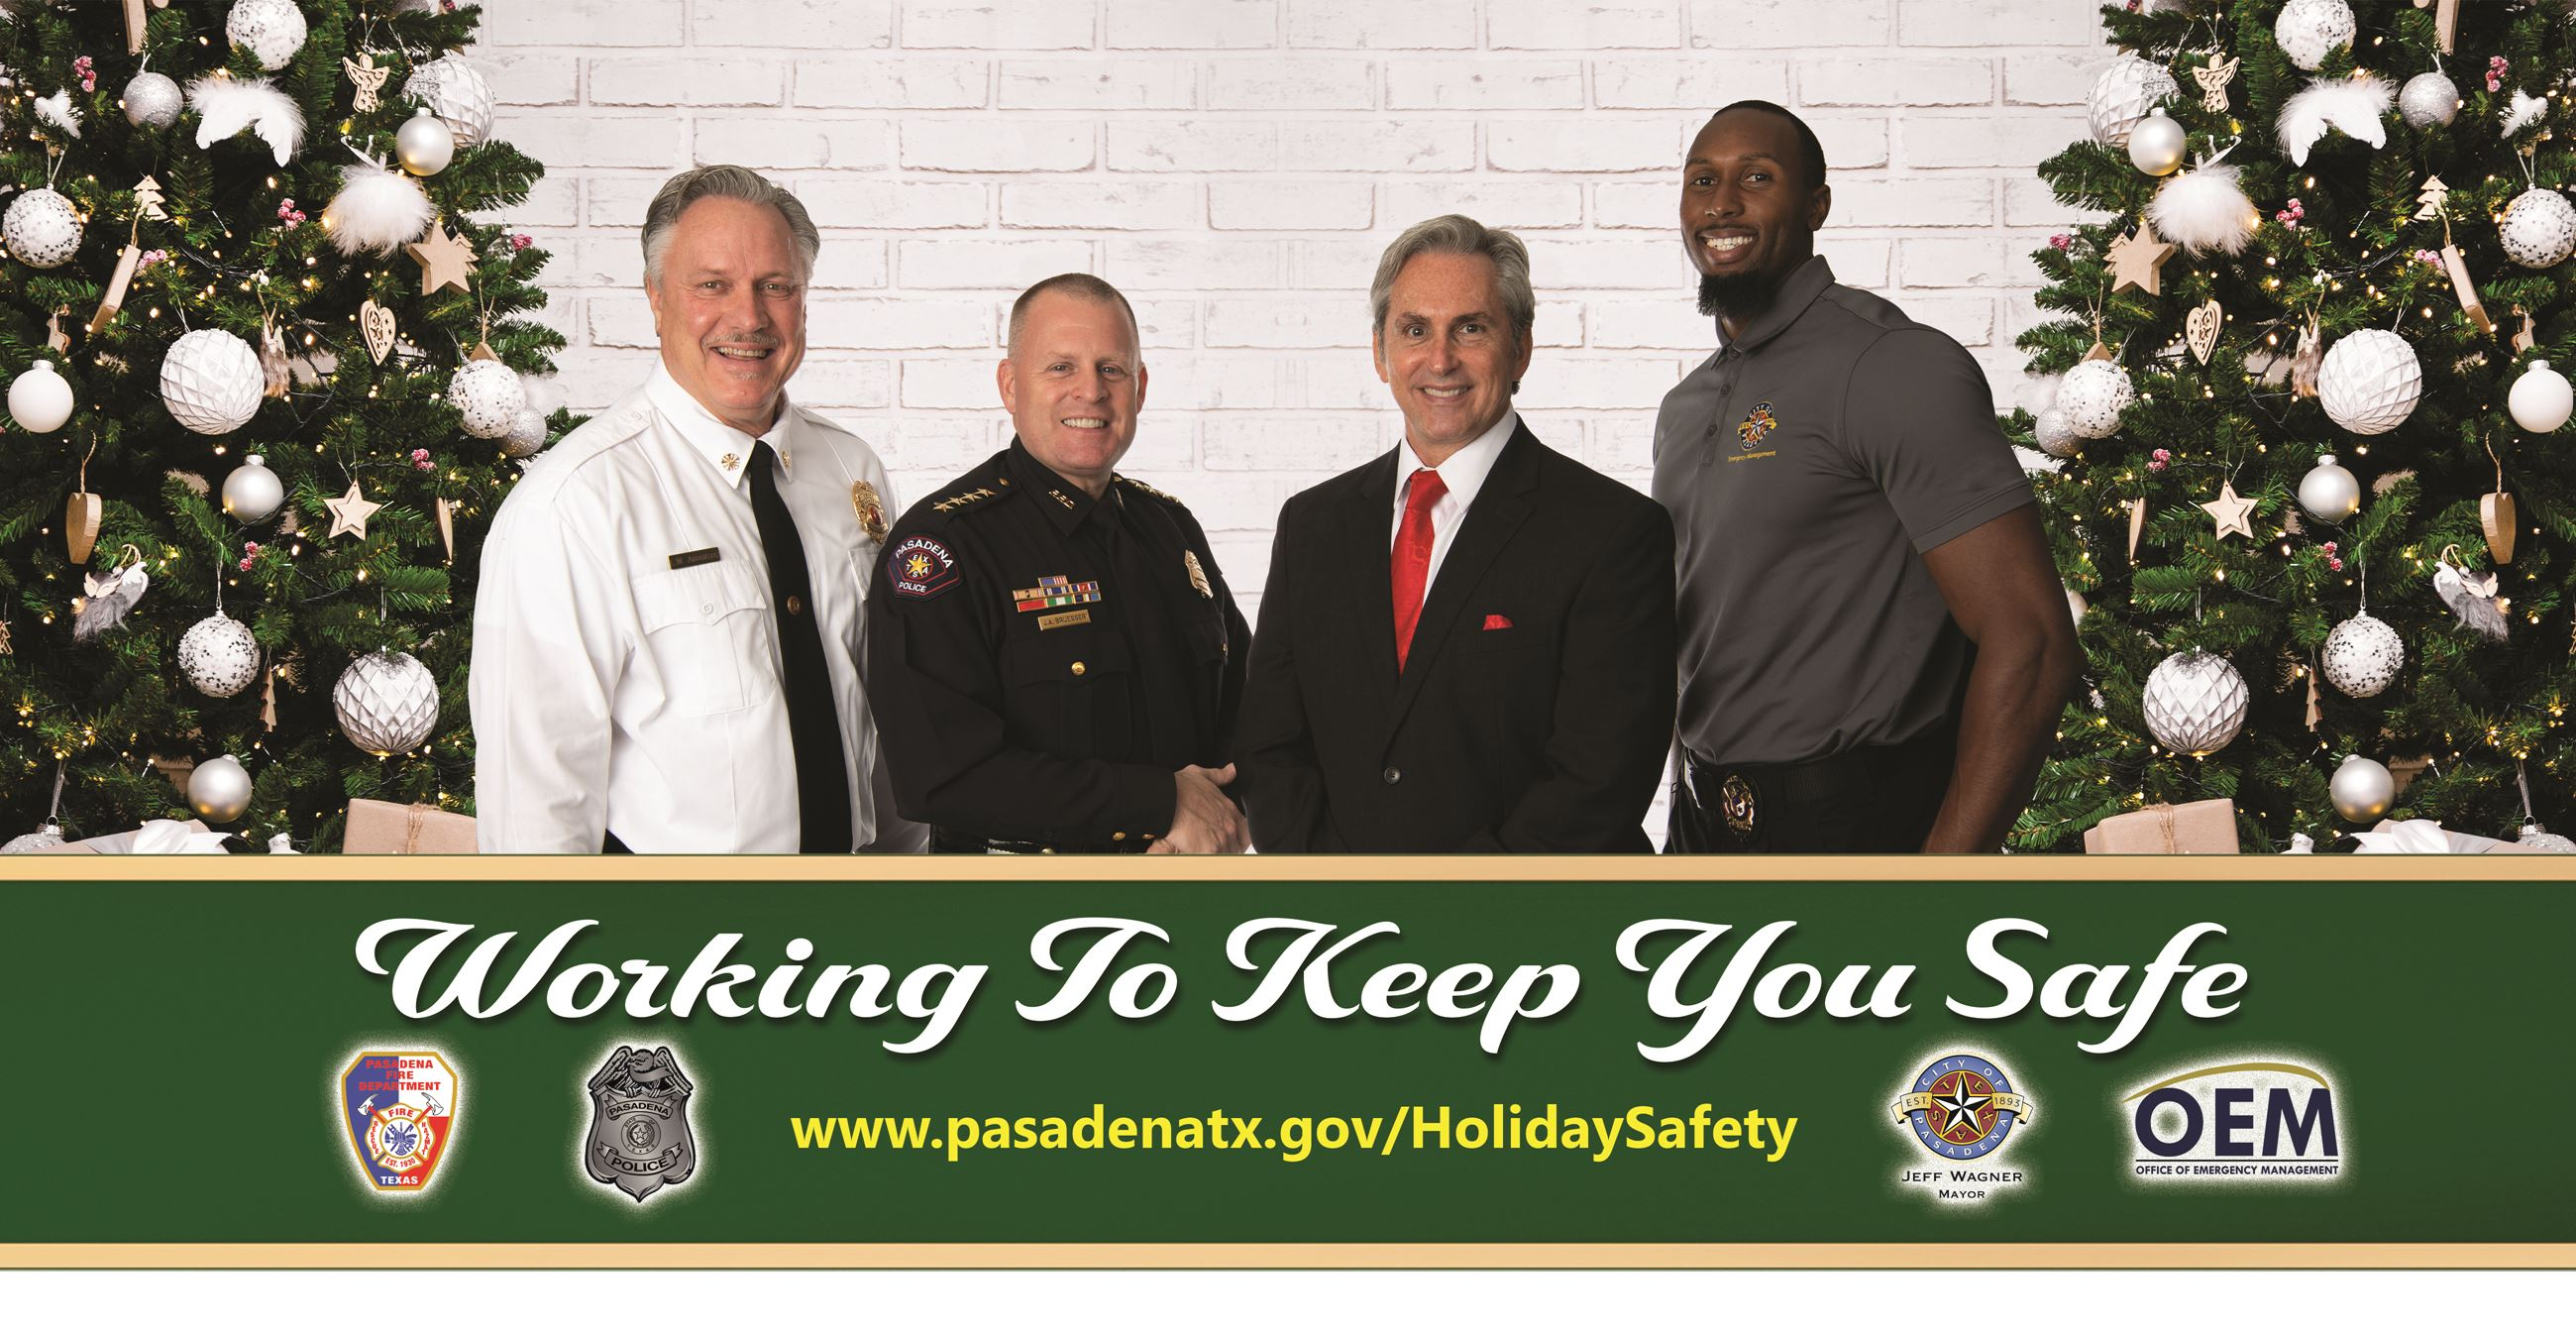 police chief, mayor, fire chief, and deputy emergency management director (Holiday safety message)